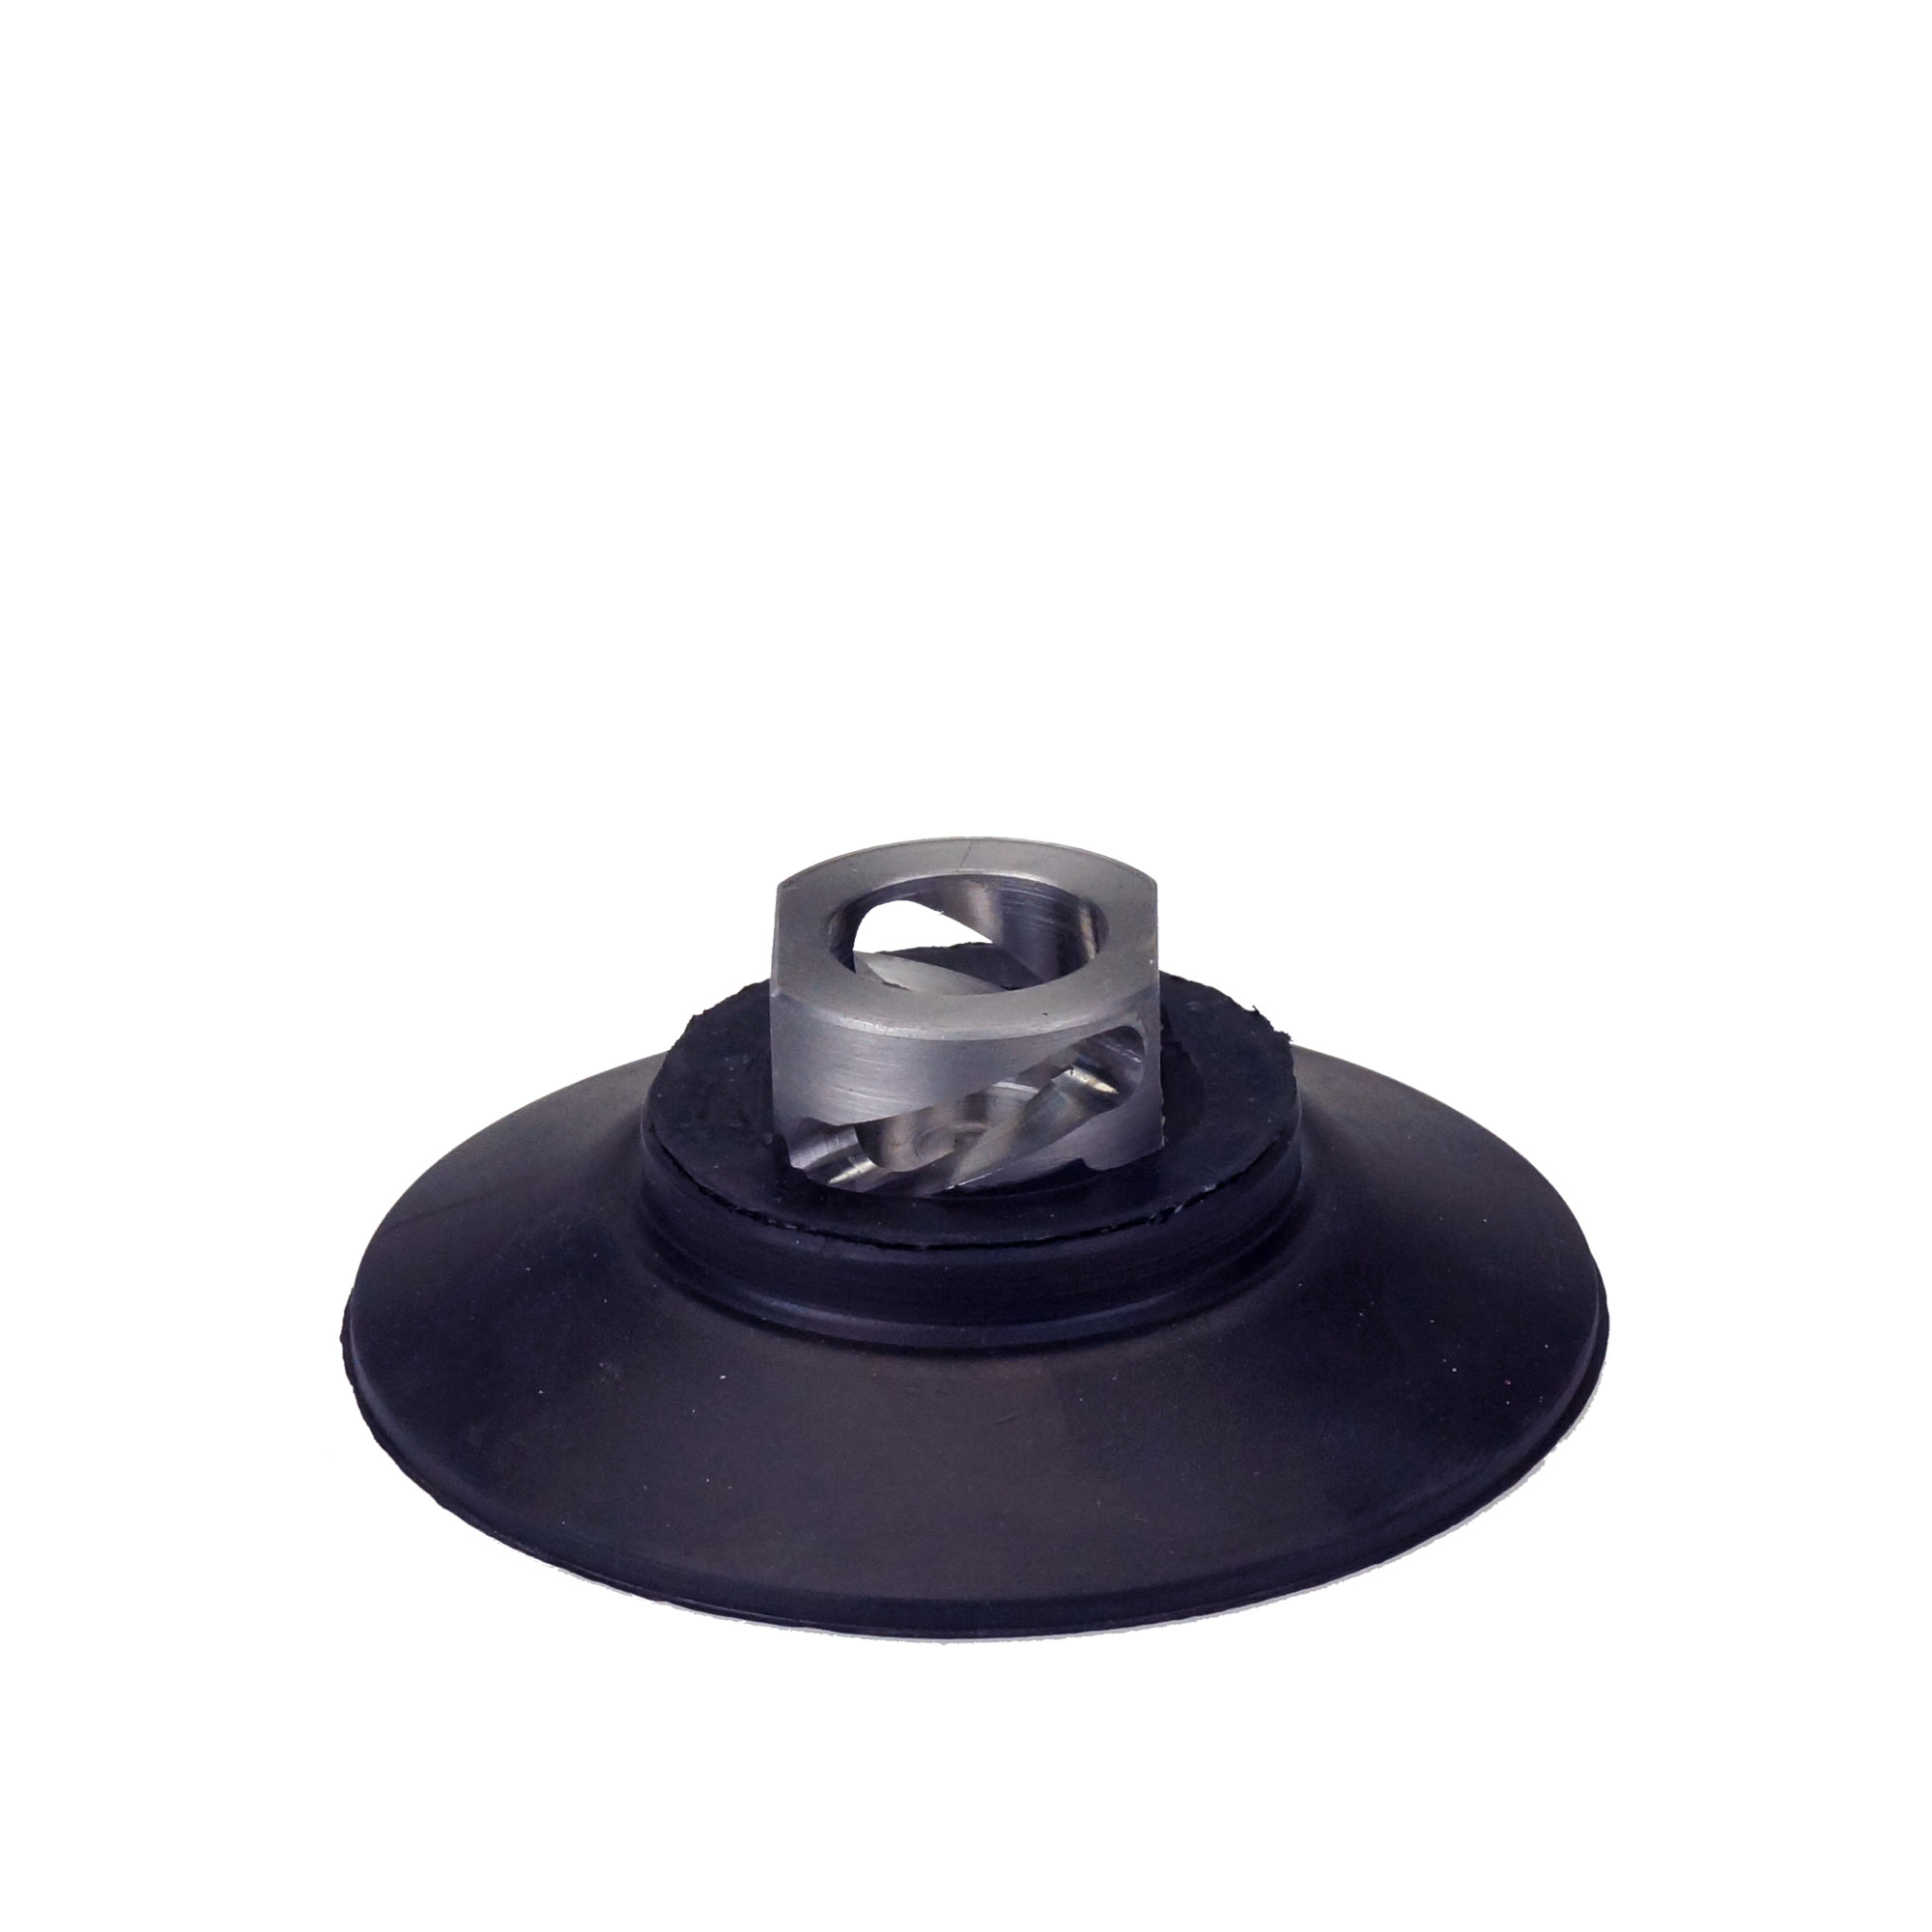 370440 rubber suction cup